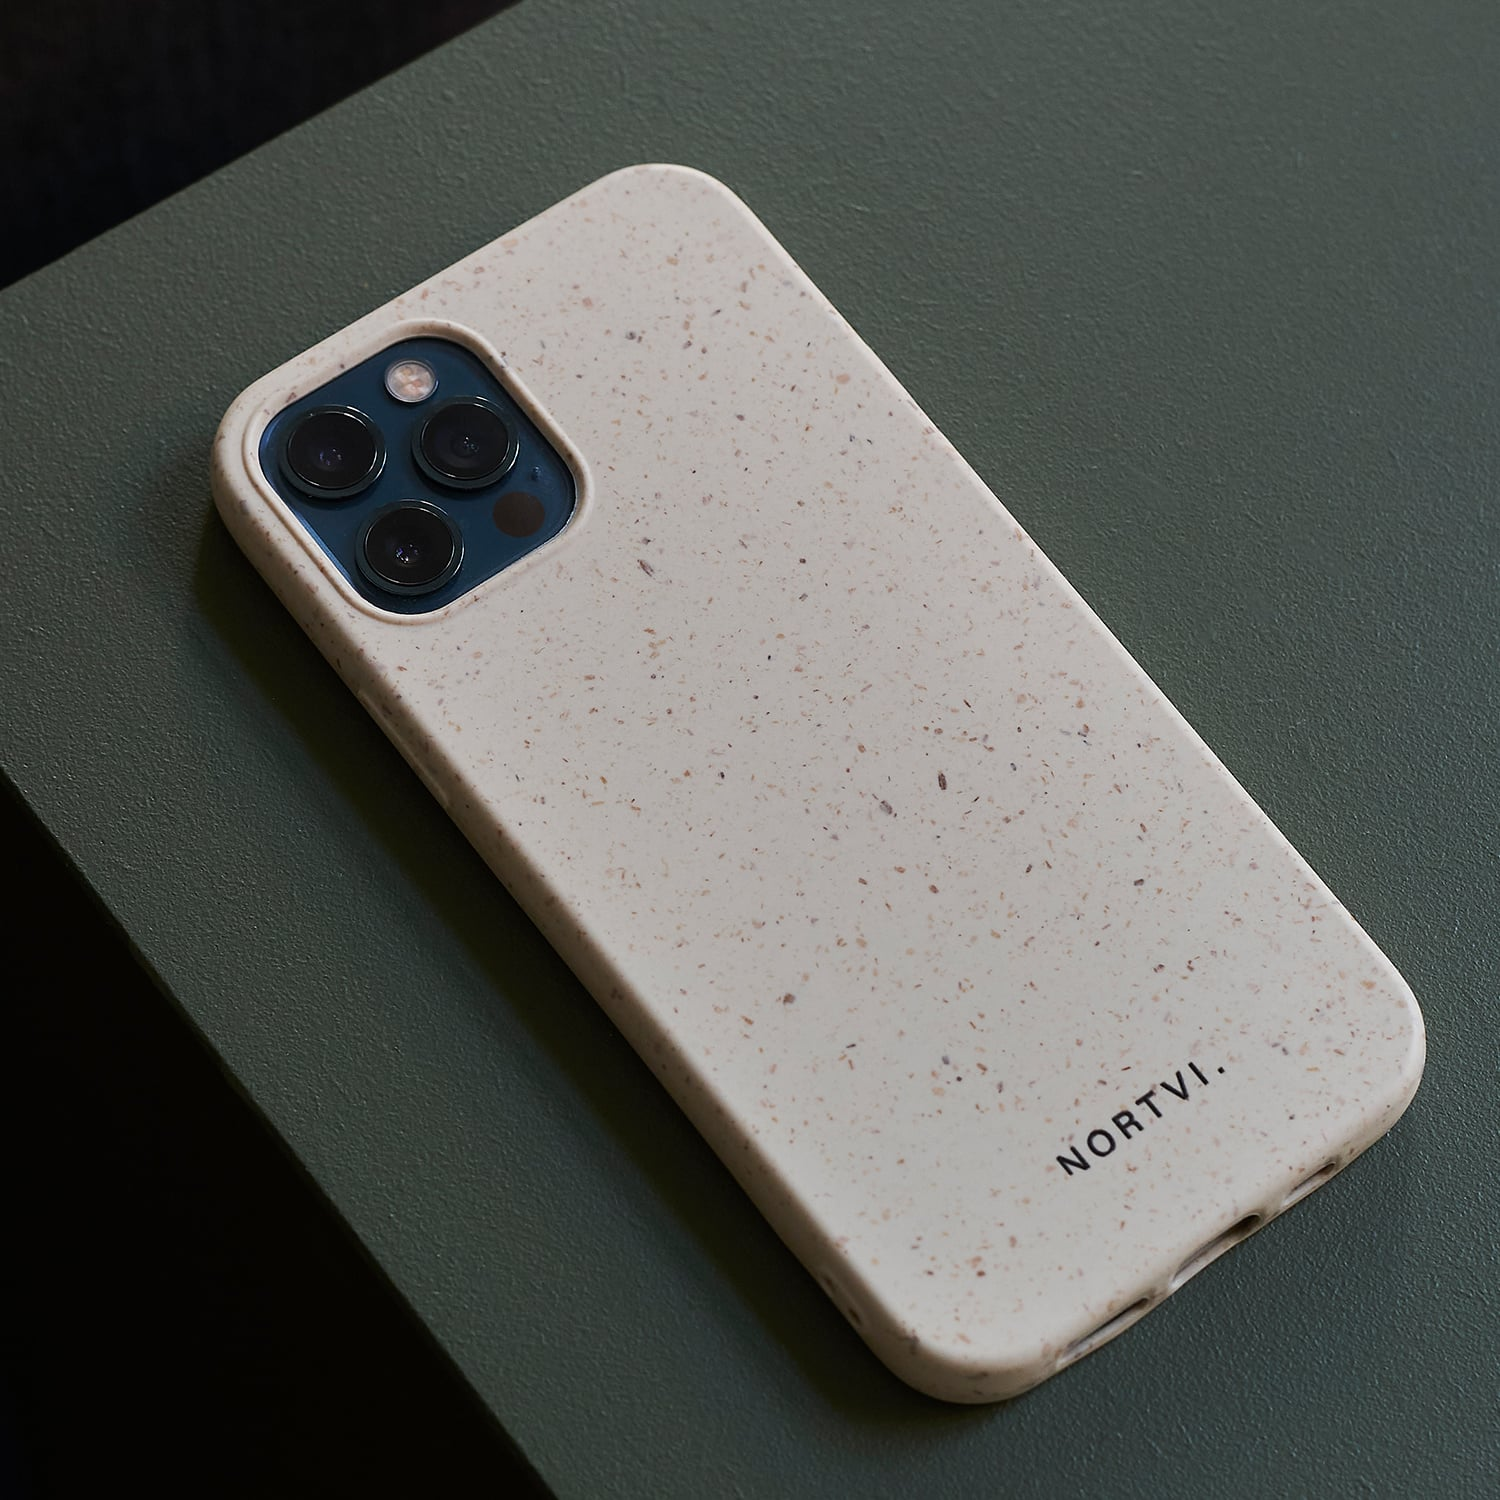 NORTVI white phone case for iPhone 12